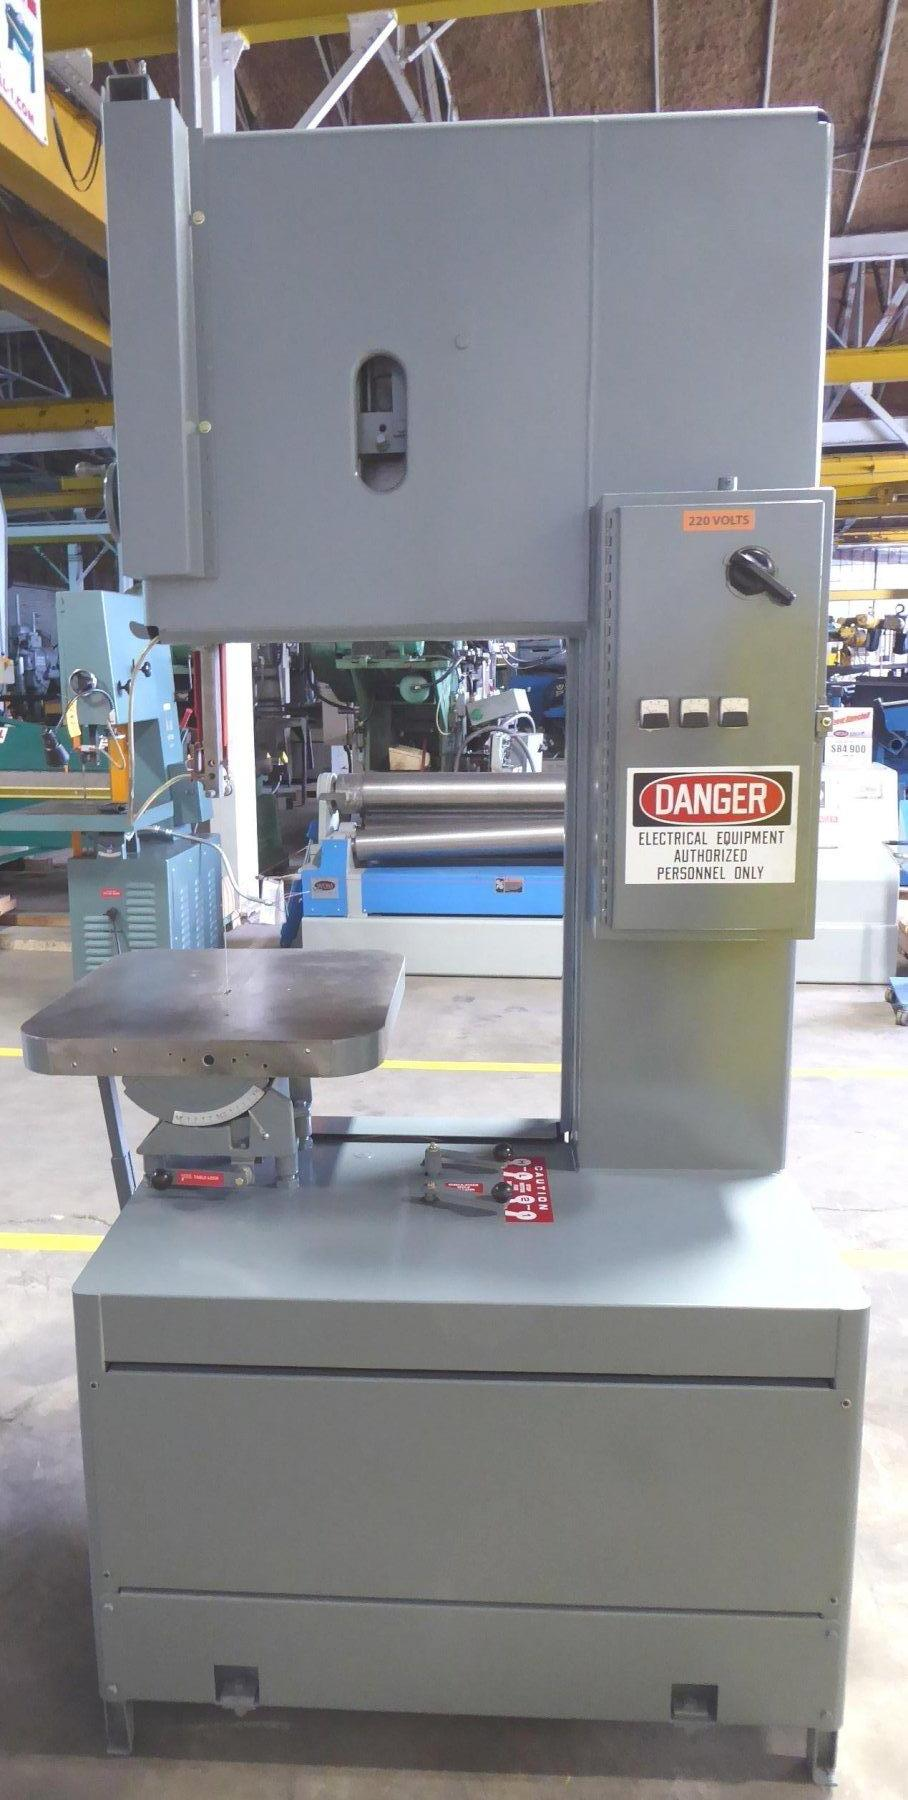 """24"""" Grob Vertical Band Saw No. 4V-24, 40-5000 FPM, 28"""" x 24"""" Tbl., Extra Height-20"""" Under Guide, 1999"""